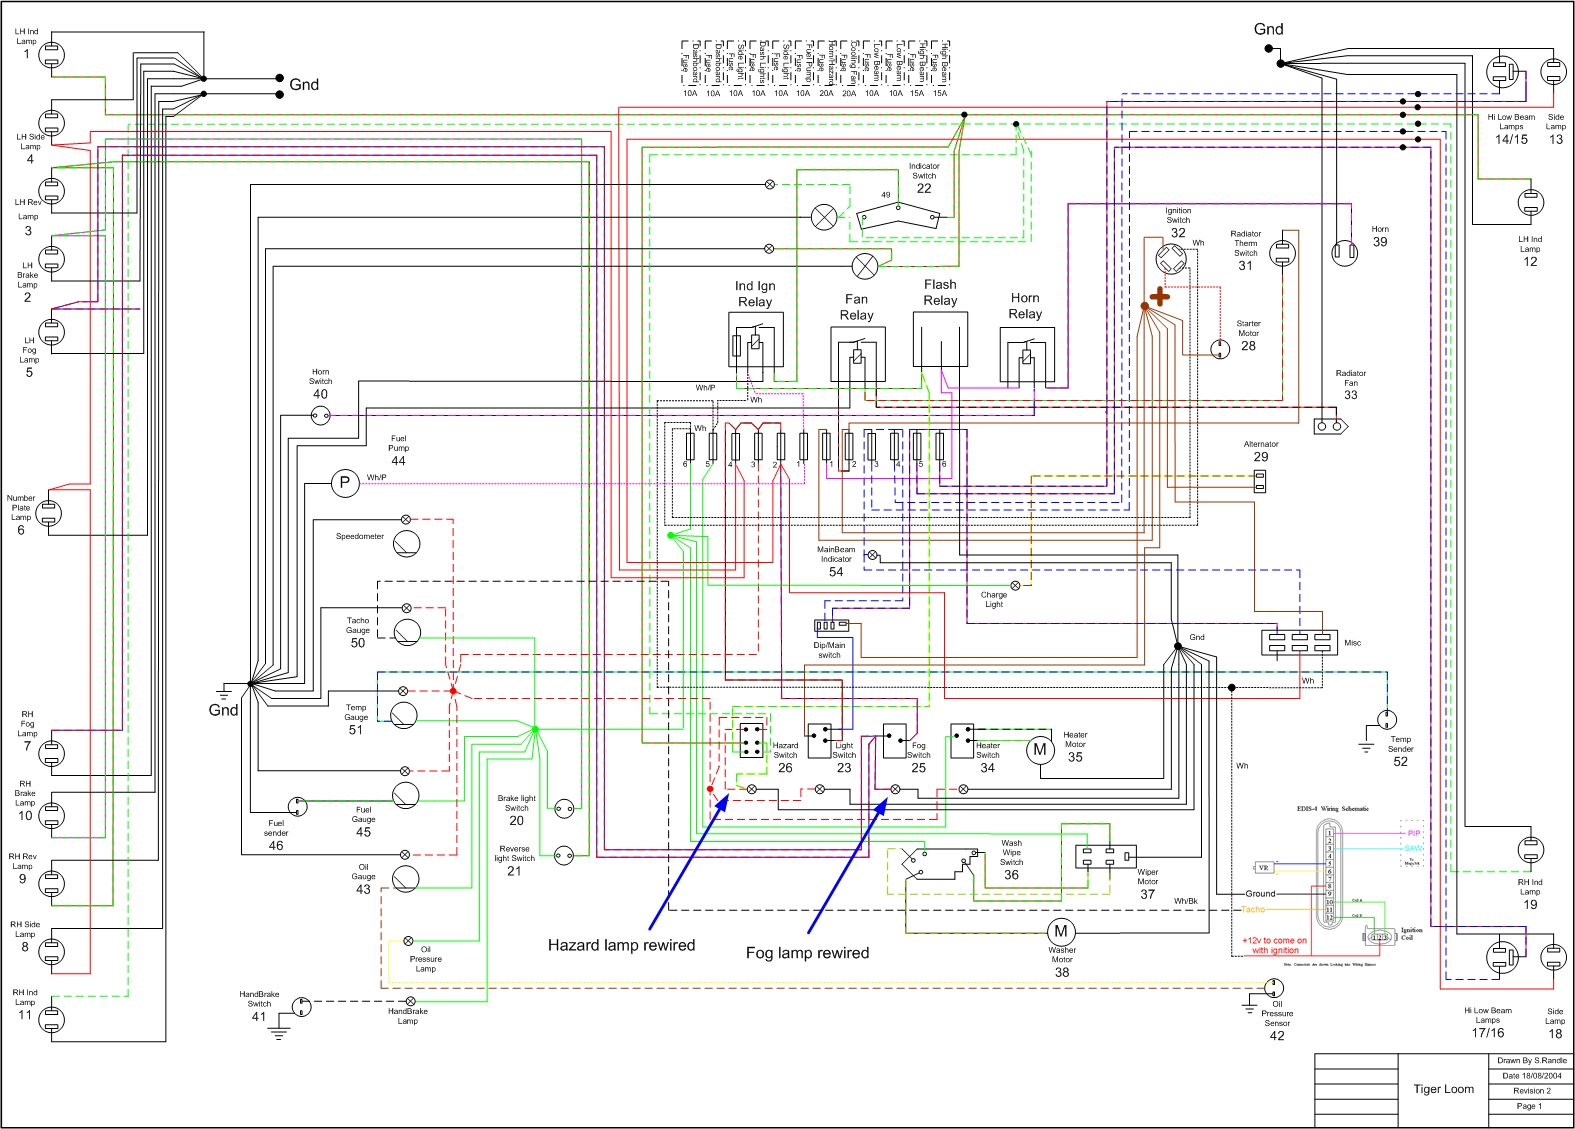 S6 Wiring Diagram welcome to the tiger owners club 2000 yamaha r6 wiring diagram at honlapkeszites.co